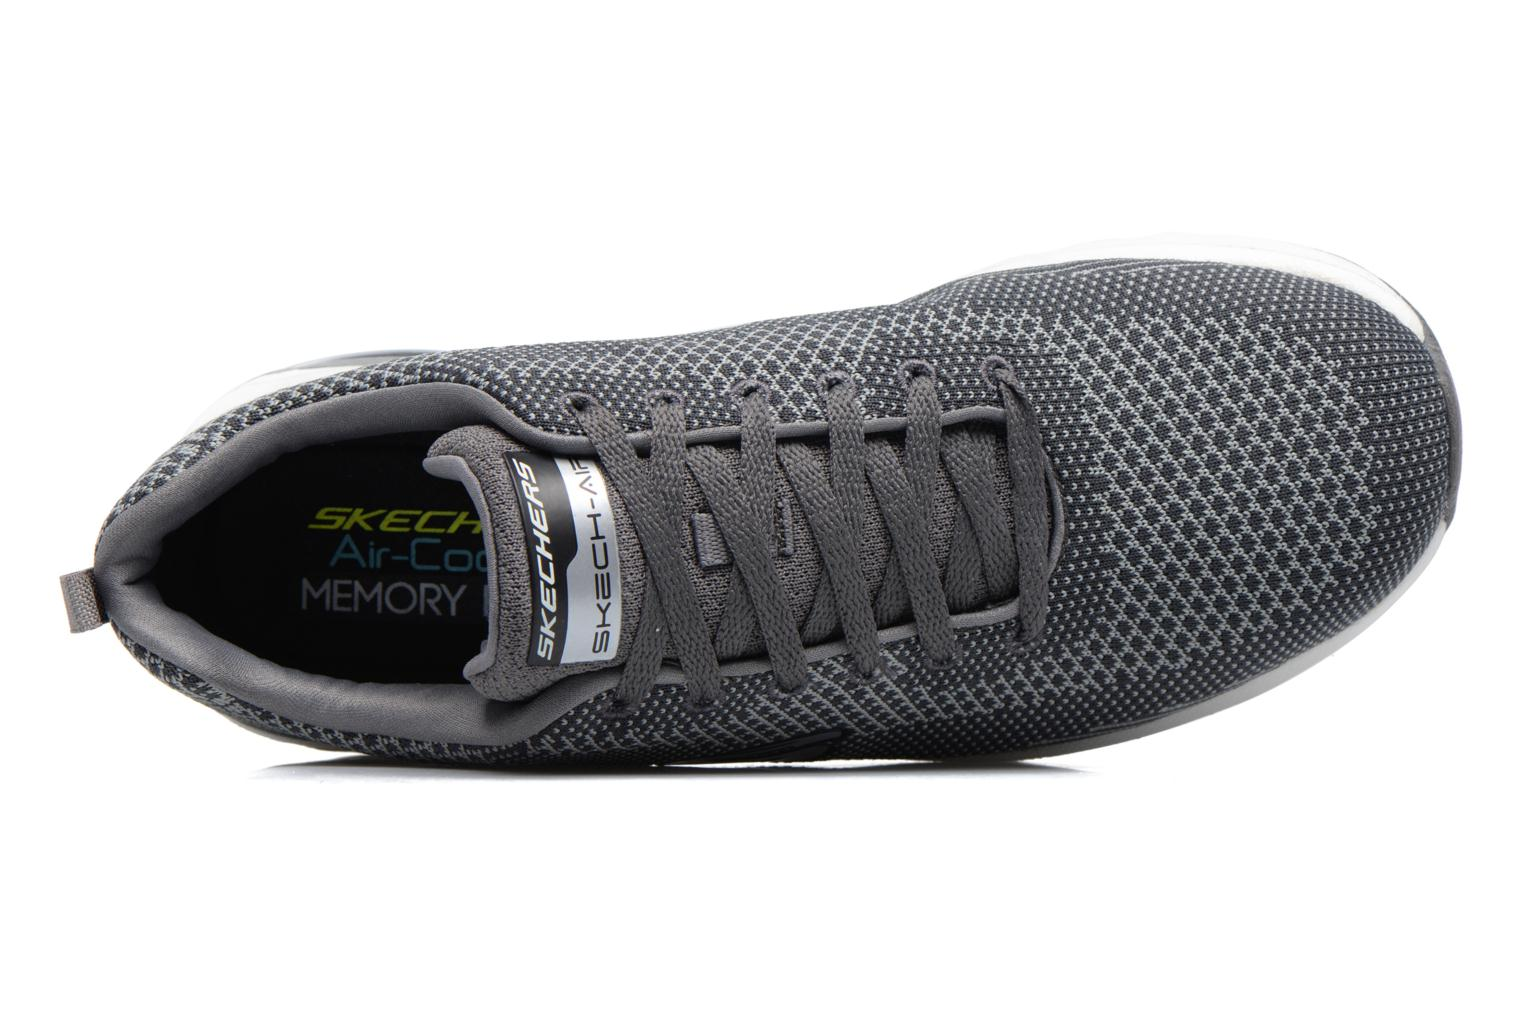 Skech Air- Extreme Charcoal